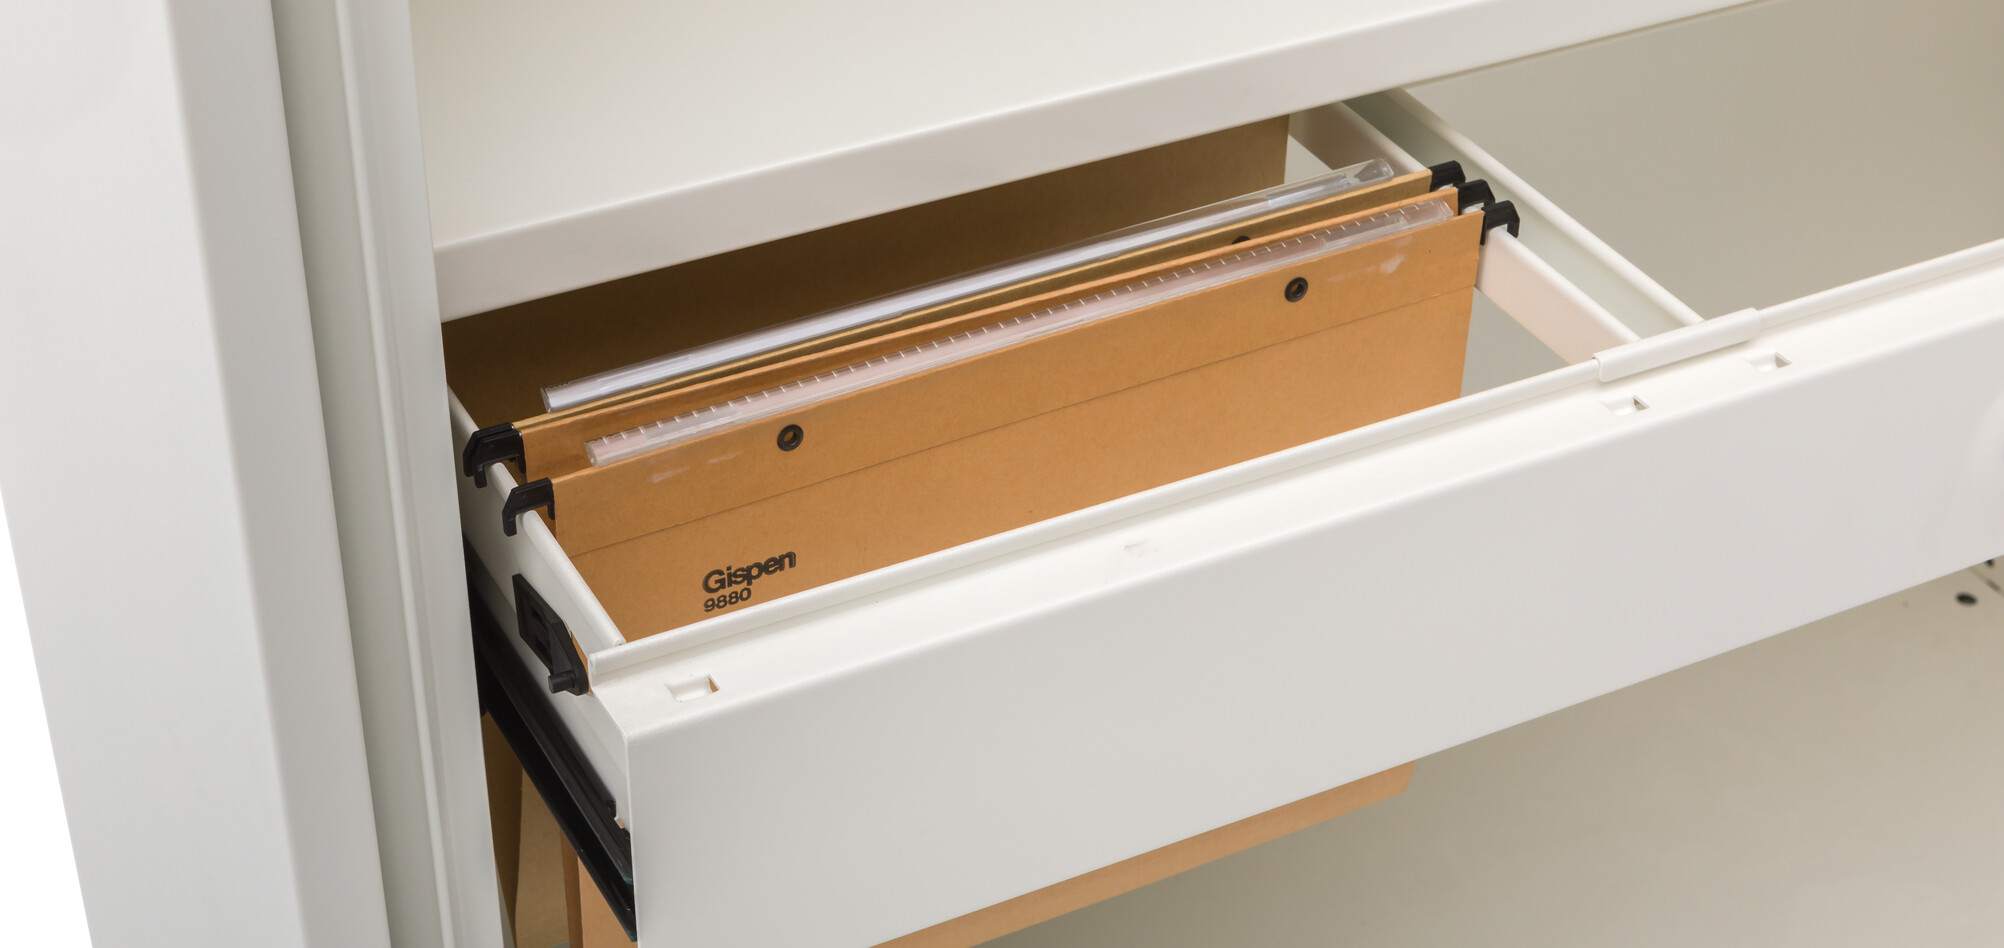 Gispen Meta tambour cabinet in white open with rectractable frame detail view